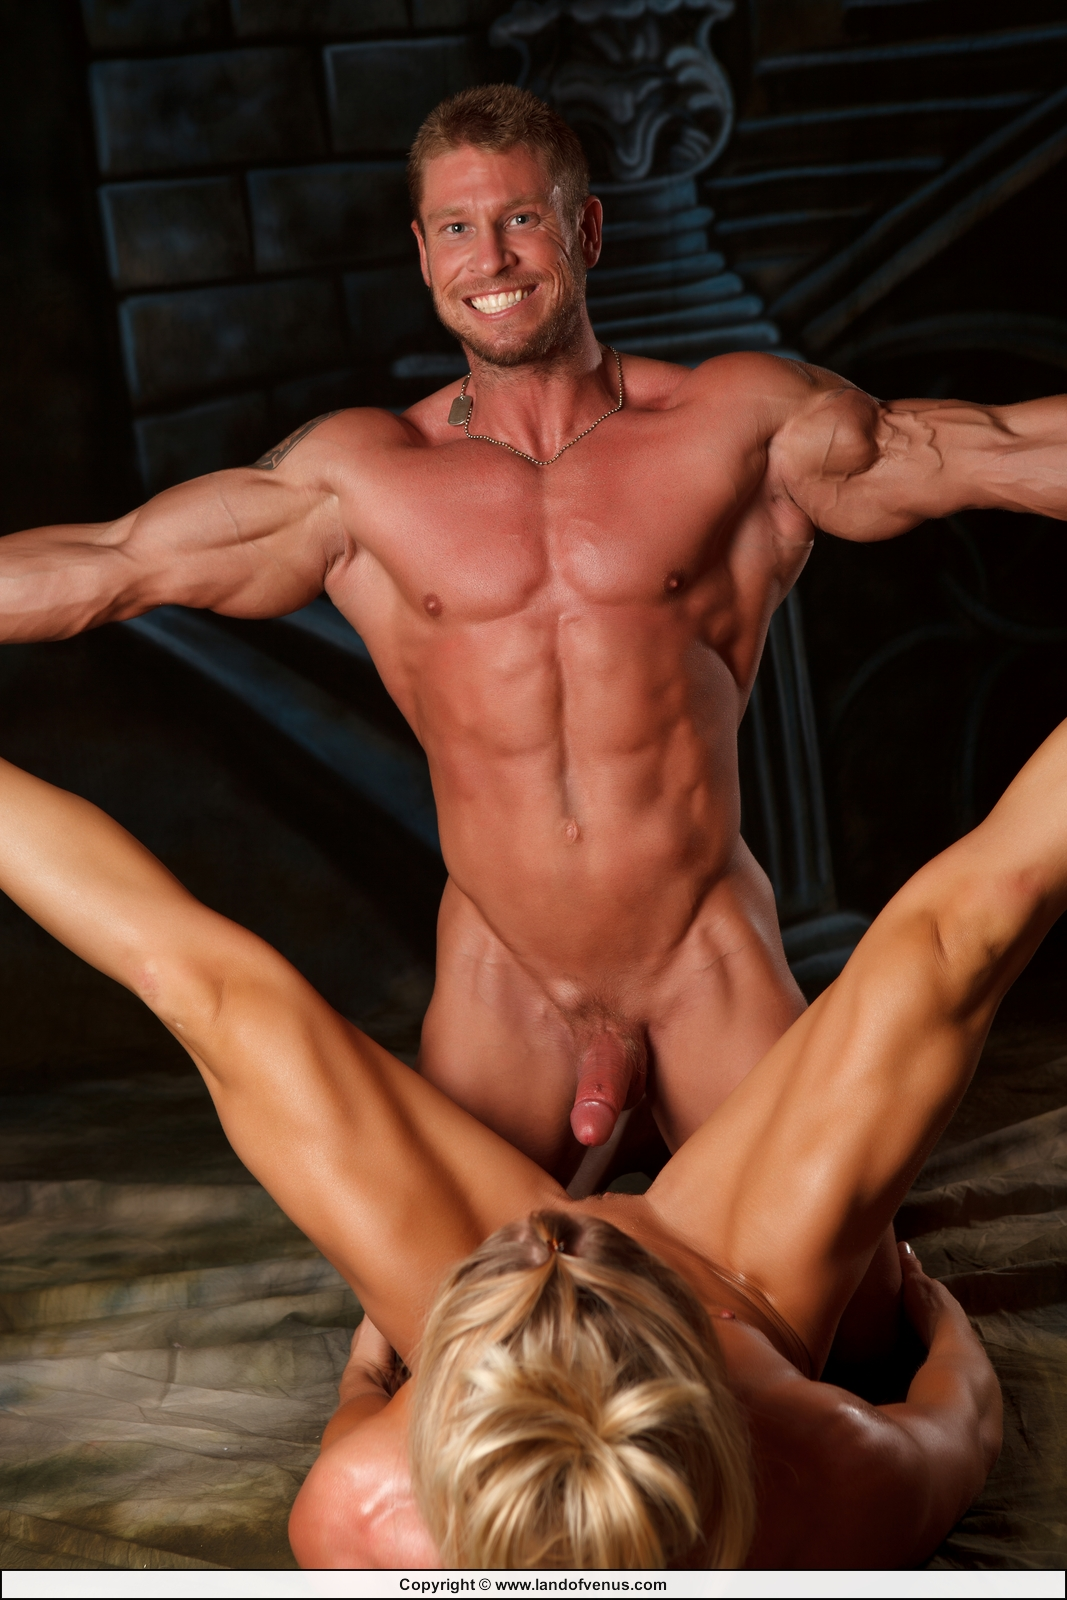 Woman bodybuilder with a penis porn sex